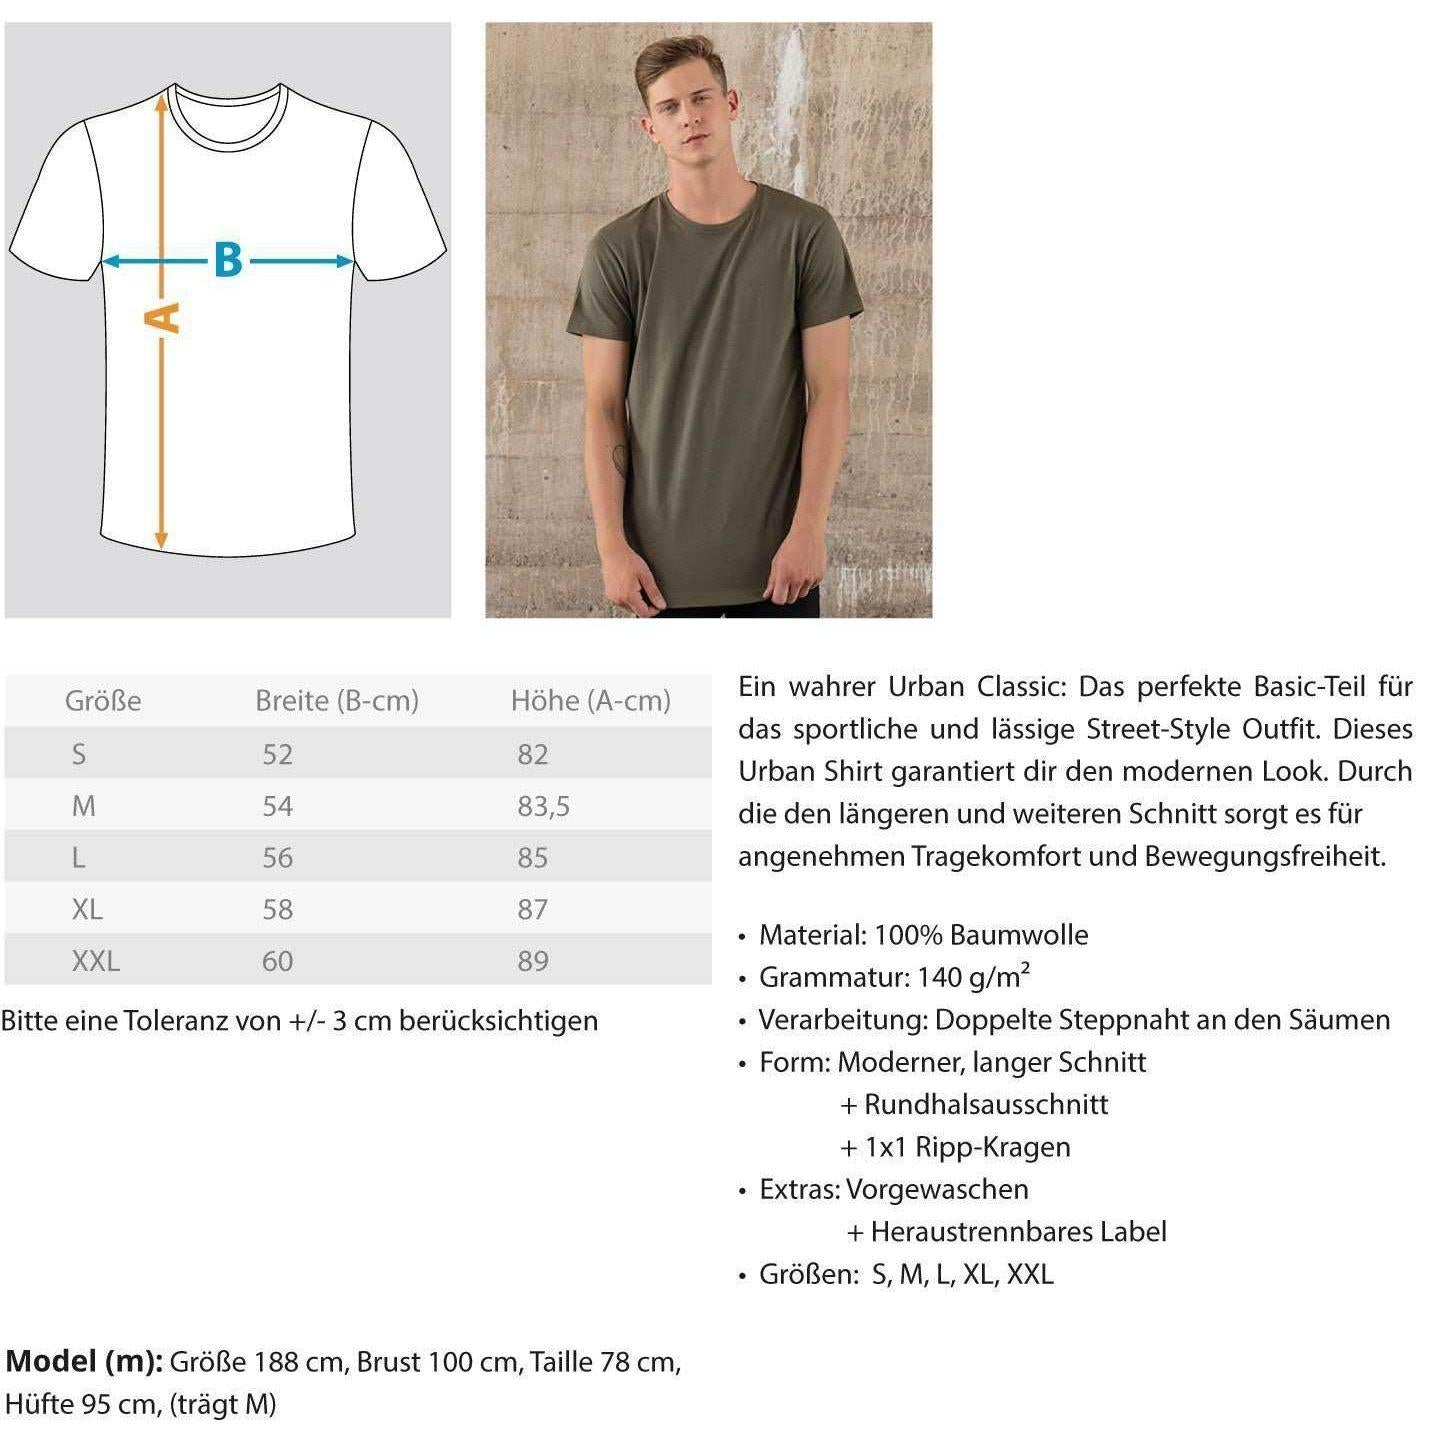 Techno Cross - Rave On!® - Men Long Tee Men Long Tee - Rave On!® the club & techno scene shop for cool young fashion streetwear style & fashion outfits + sexy festival 420 stuff